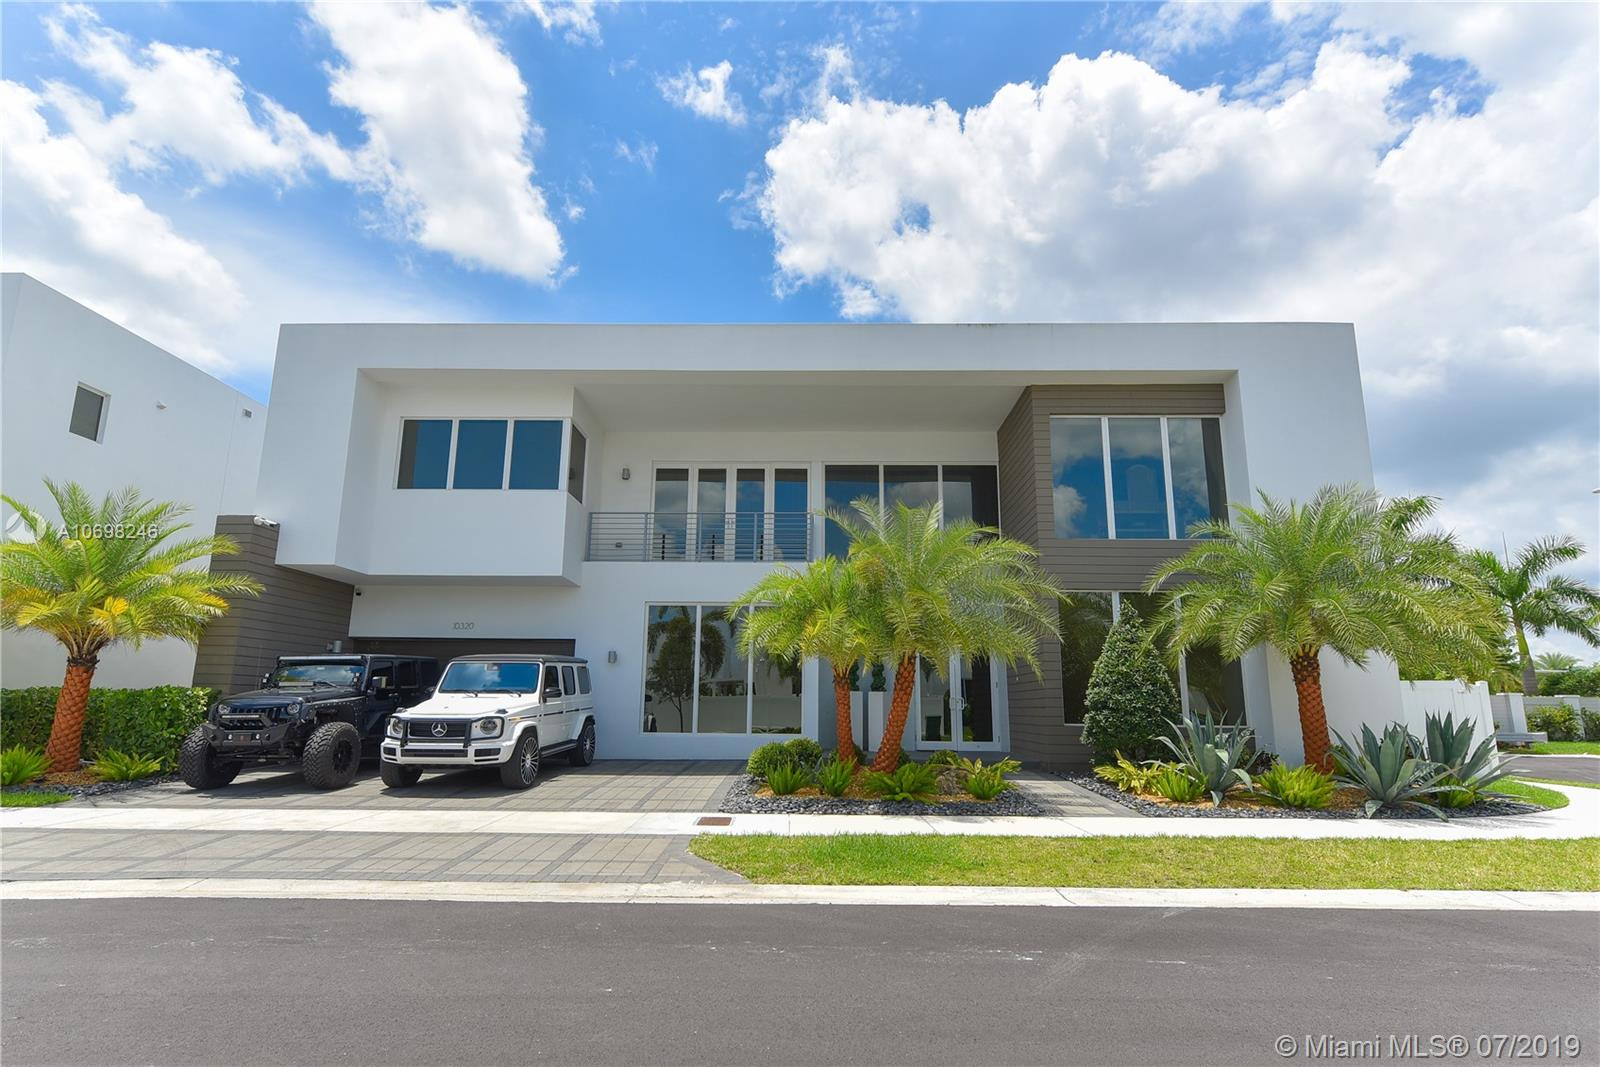 10320 NW 74th Ter, Doral, FL 33178